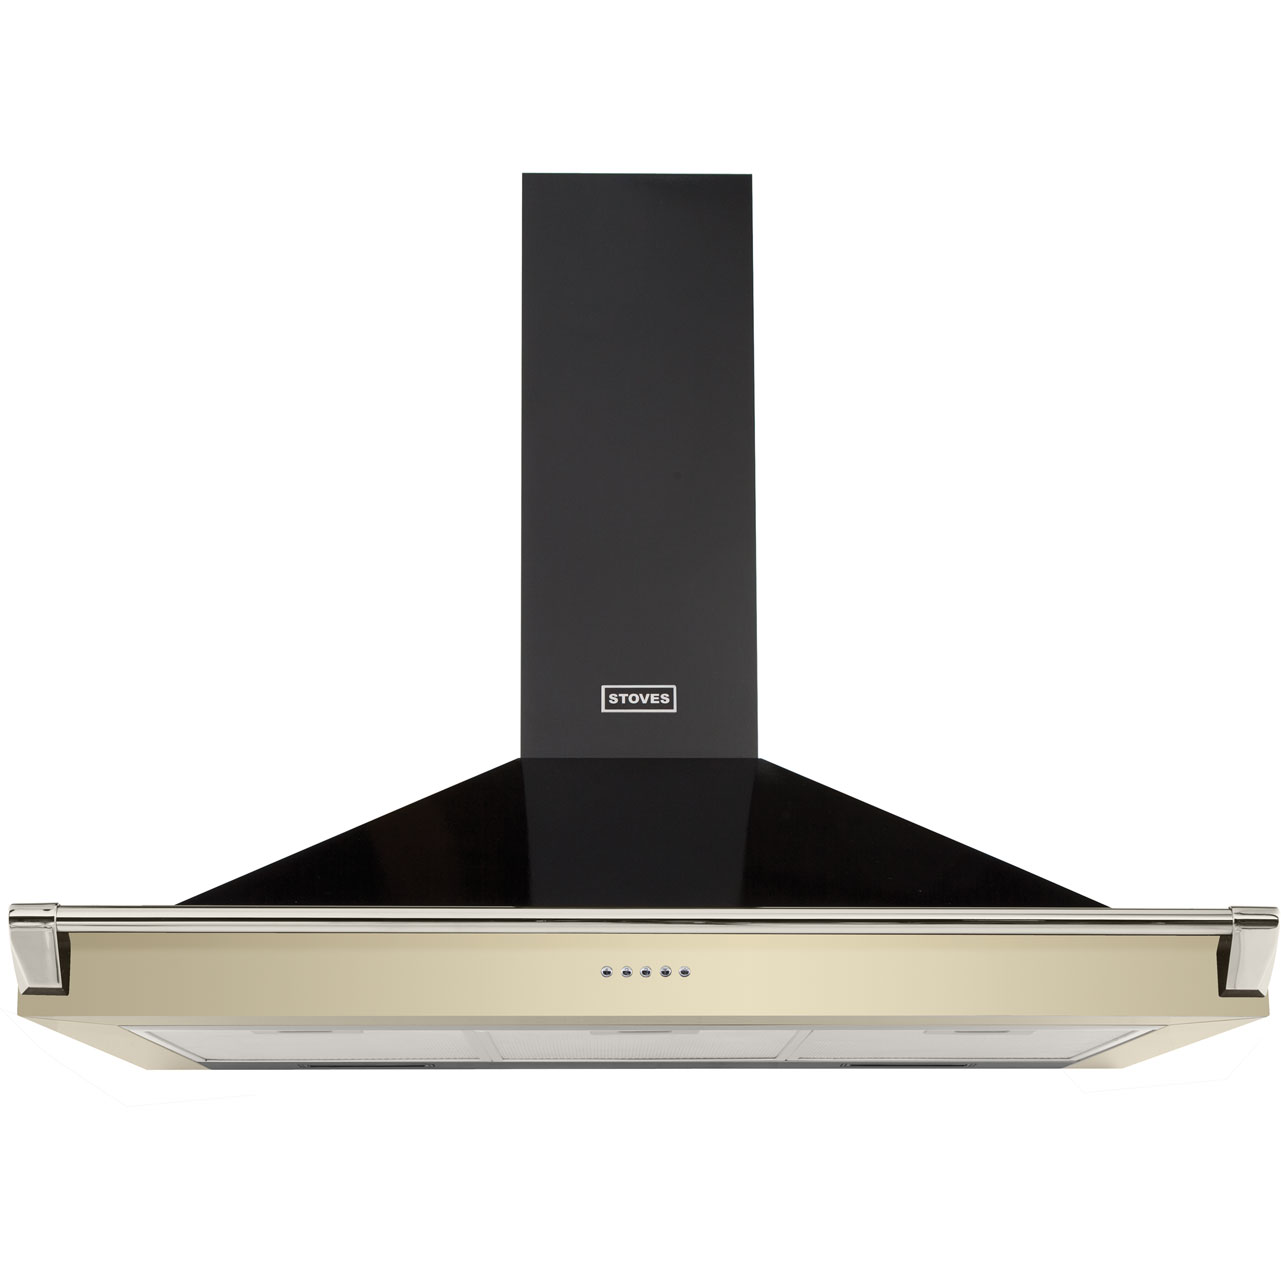 Stoves 1100RICHMONDCHRAILMK2 Integrated Cooker Hood in Champagne